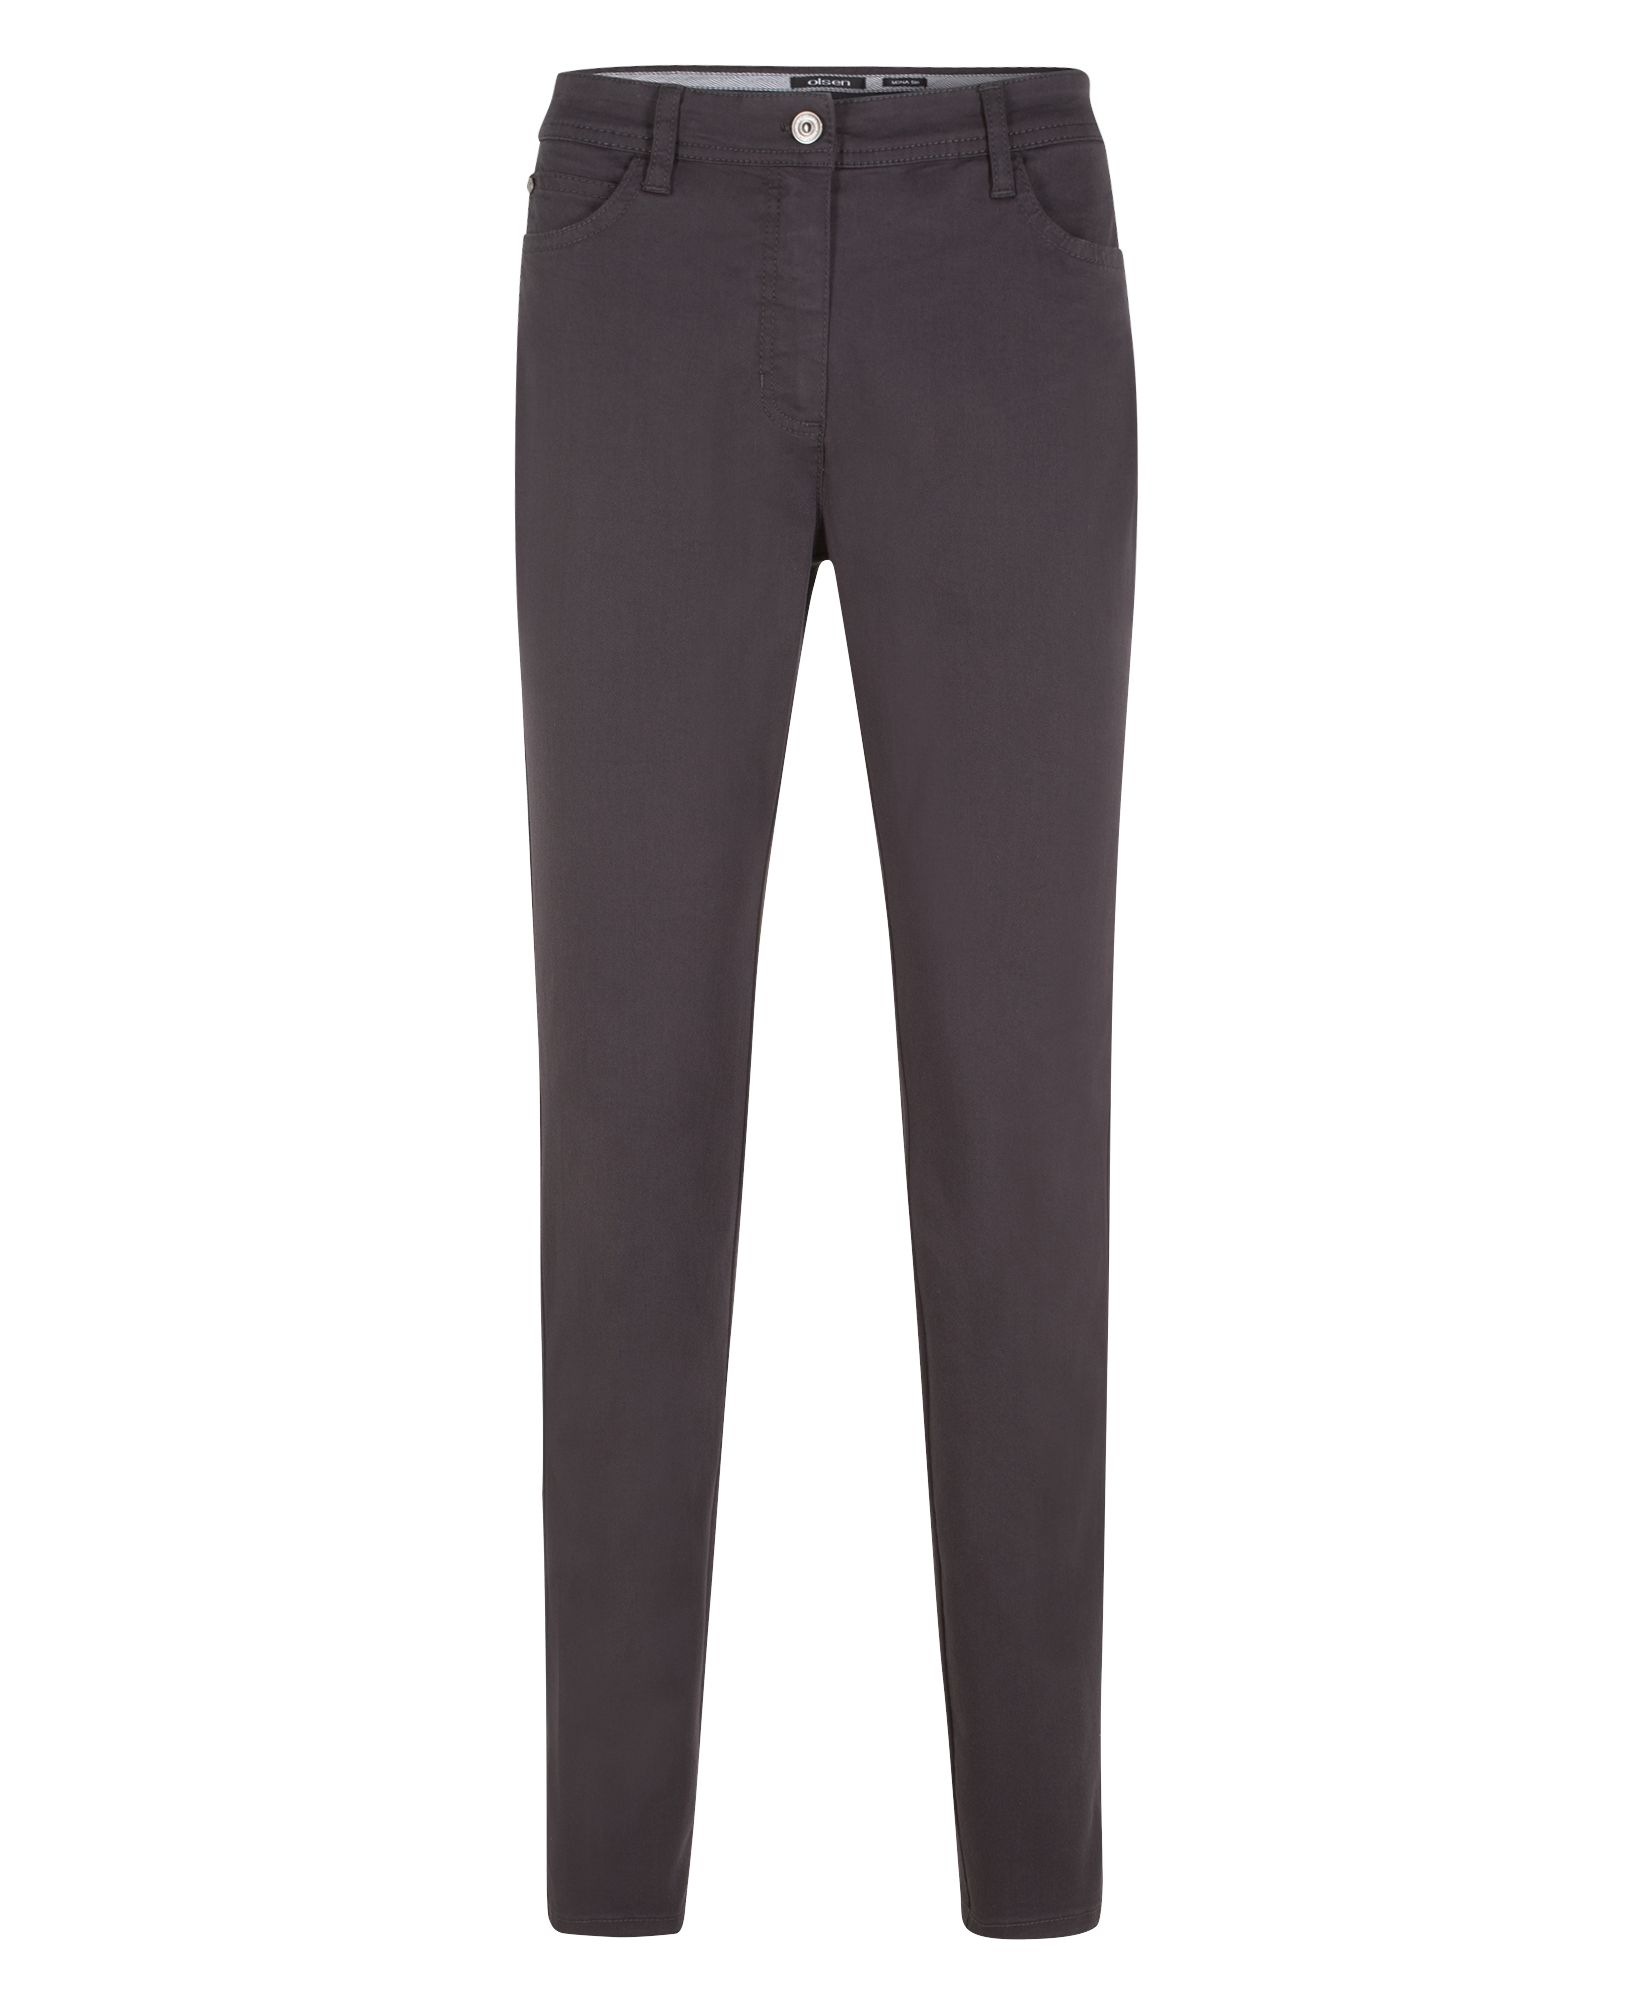 Olsen Power Stretch Trousers Mona Slim, Black